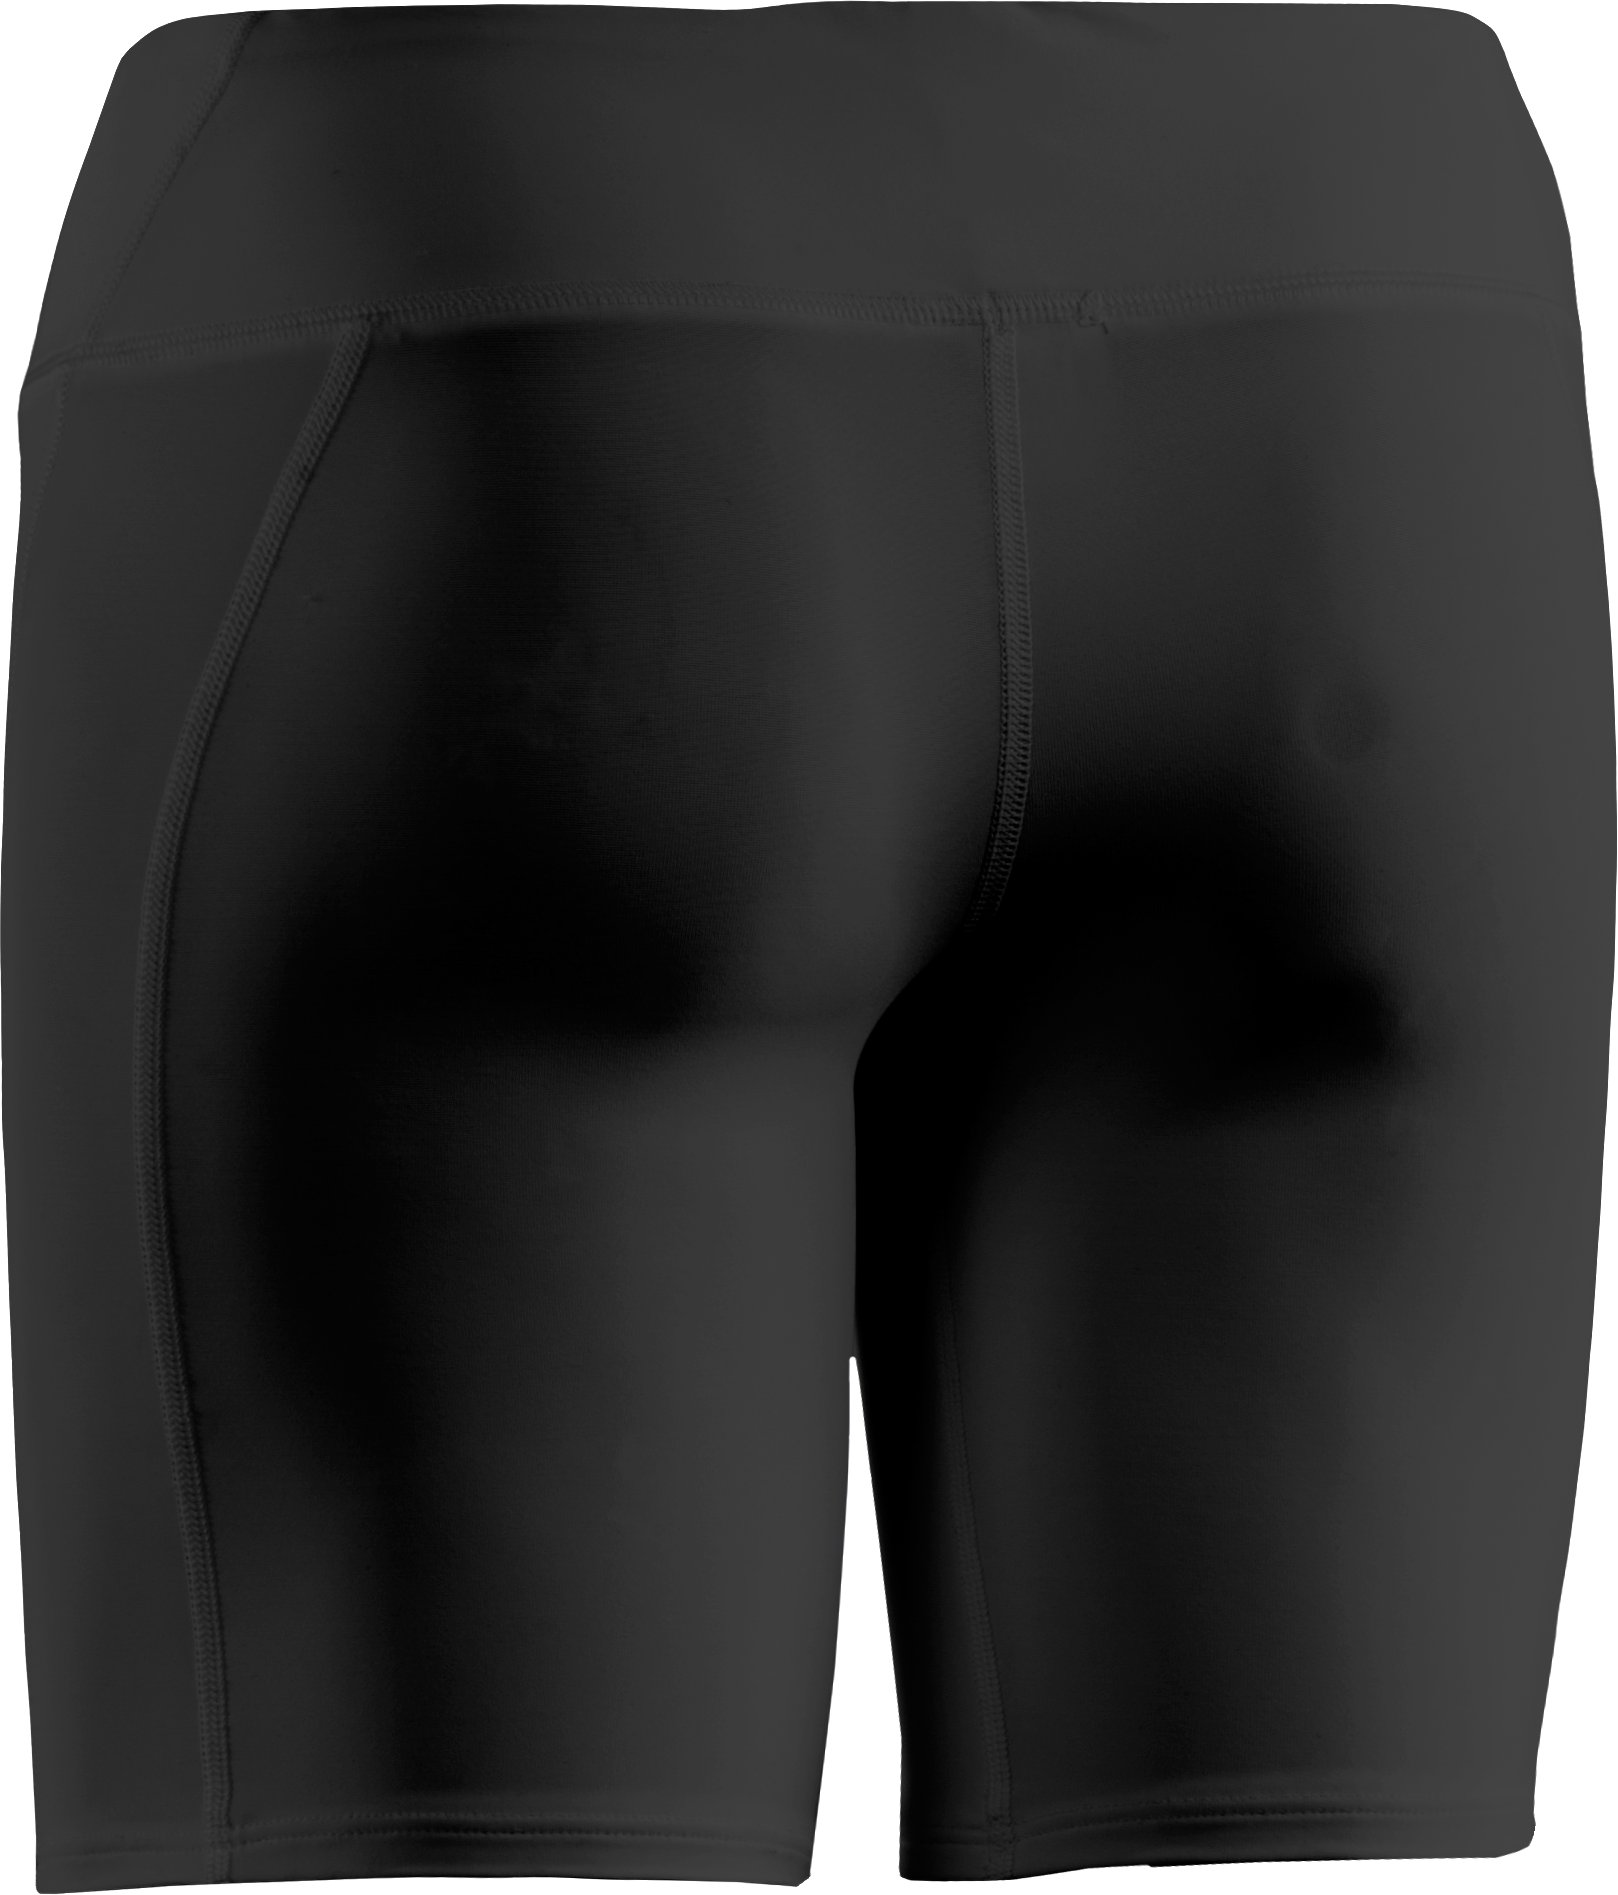 "Women's UA Authentic 7"" Compression Shorts, Black"